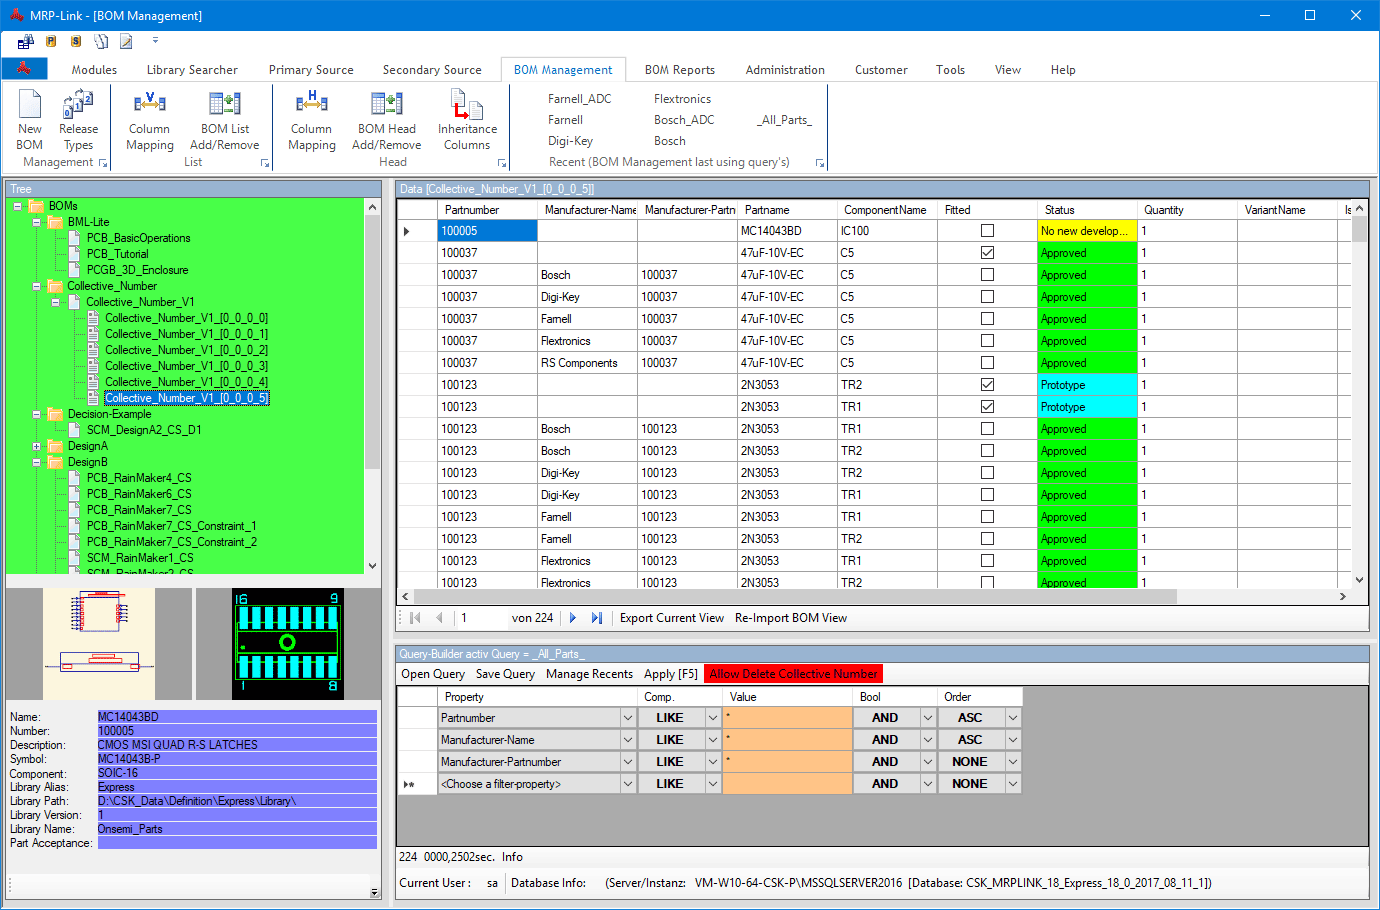 plm  erp  mrp  link  BOM  Management  BOM  View  Colored